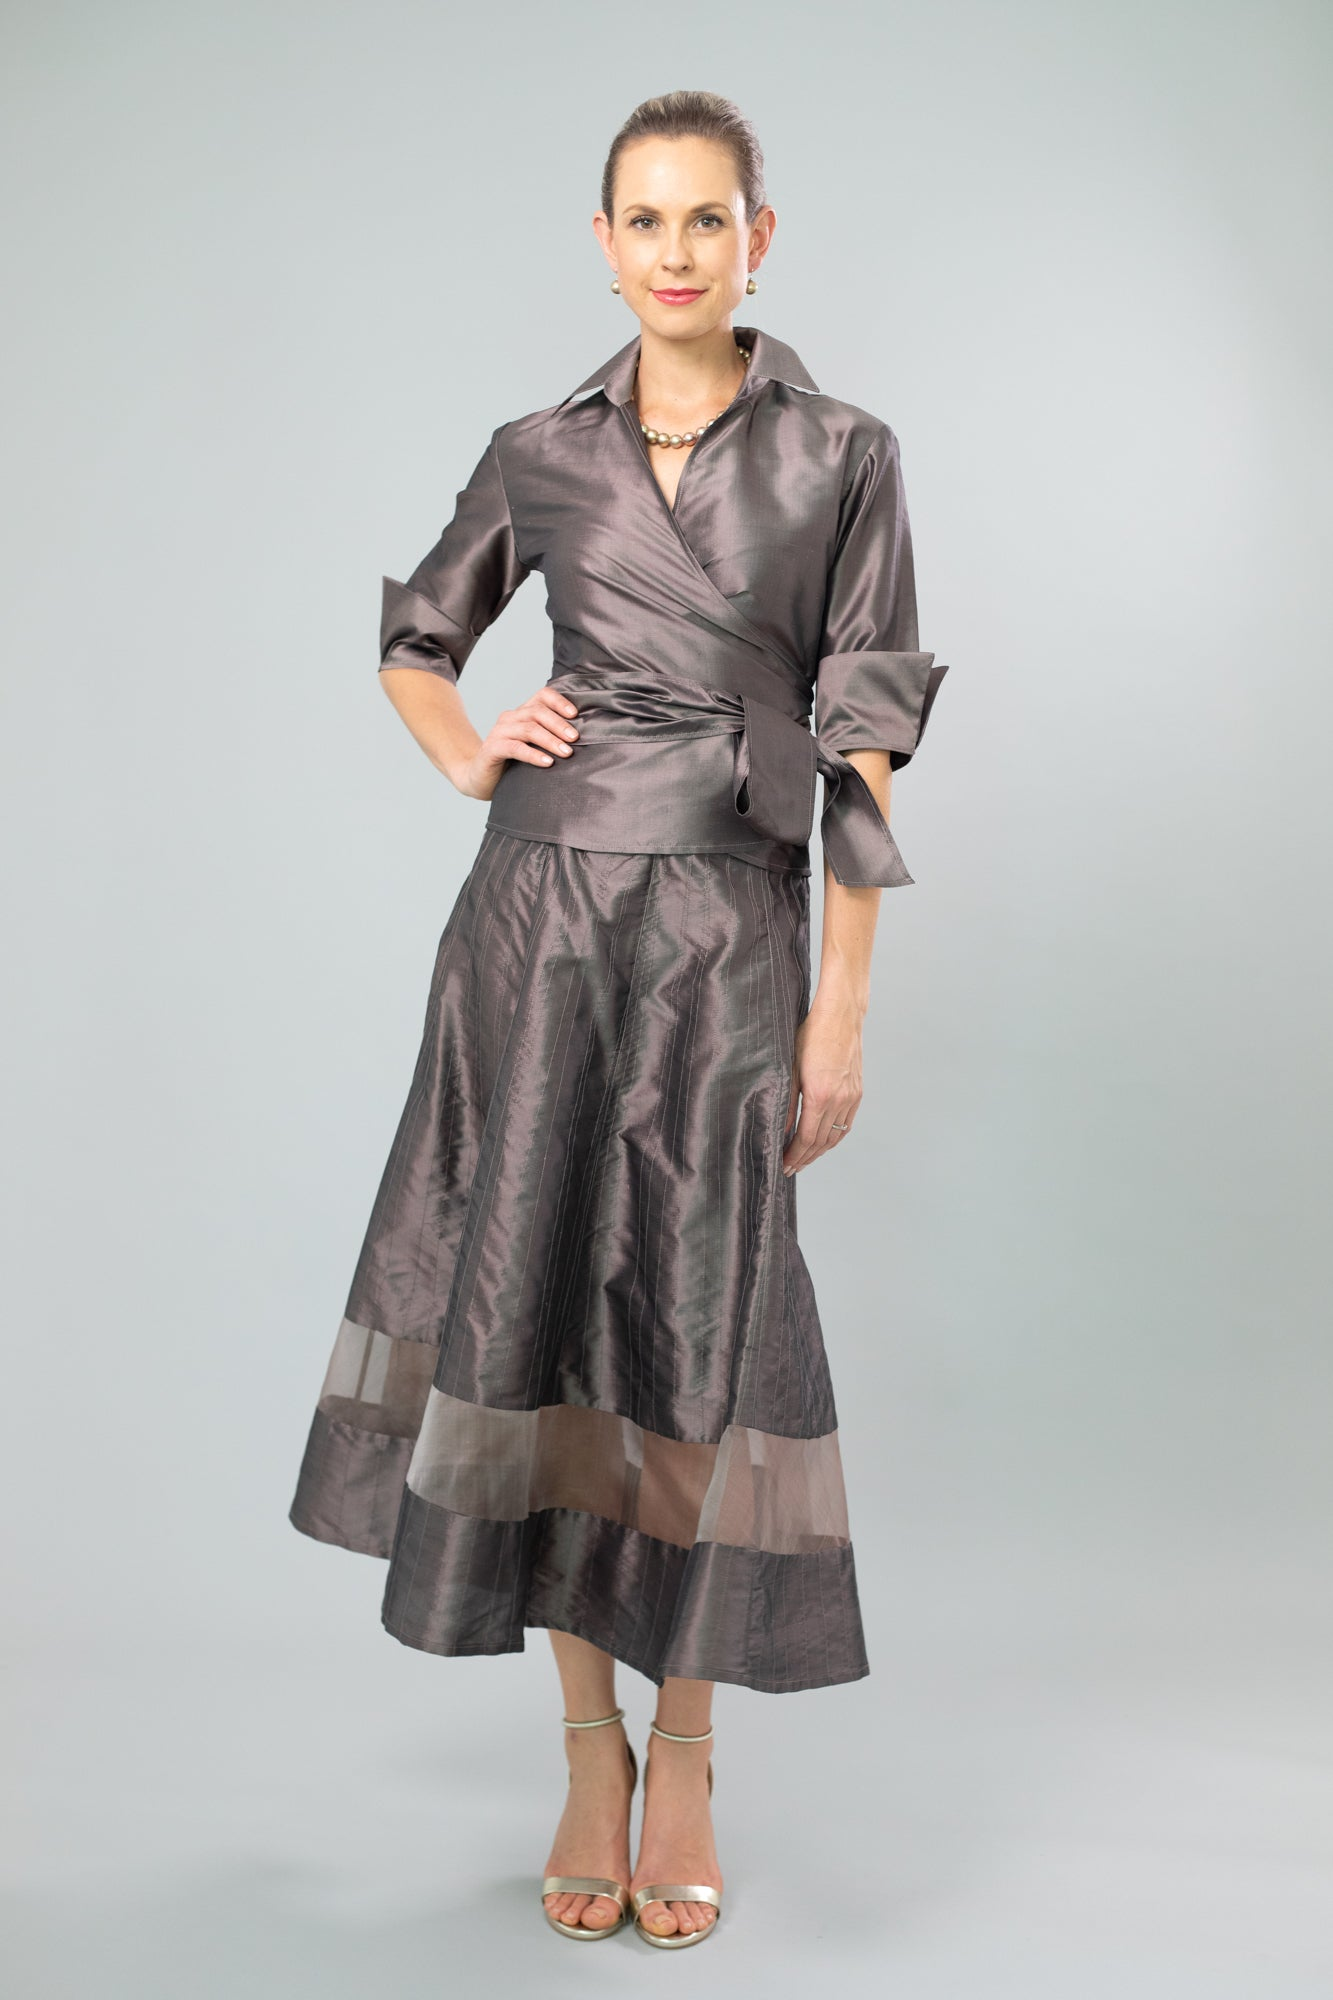 Nickel Pure Silk Classic Wrap Shirt and Cocktail Skirt for the Mother of the Bride / Groom from Living Silk